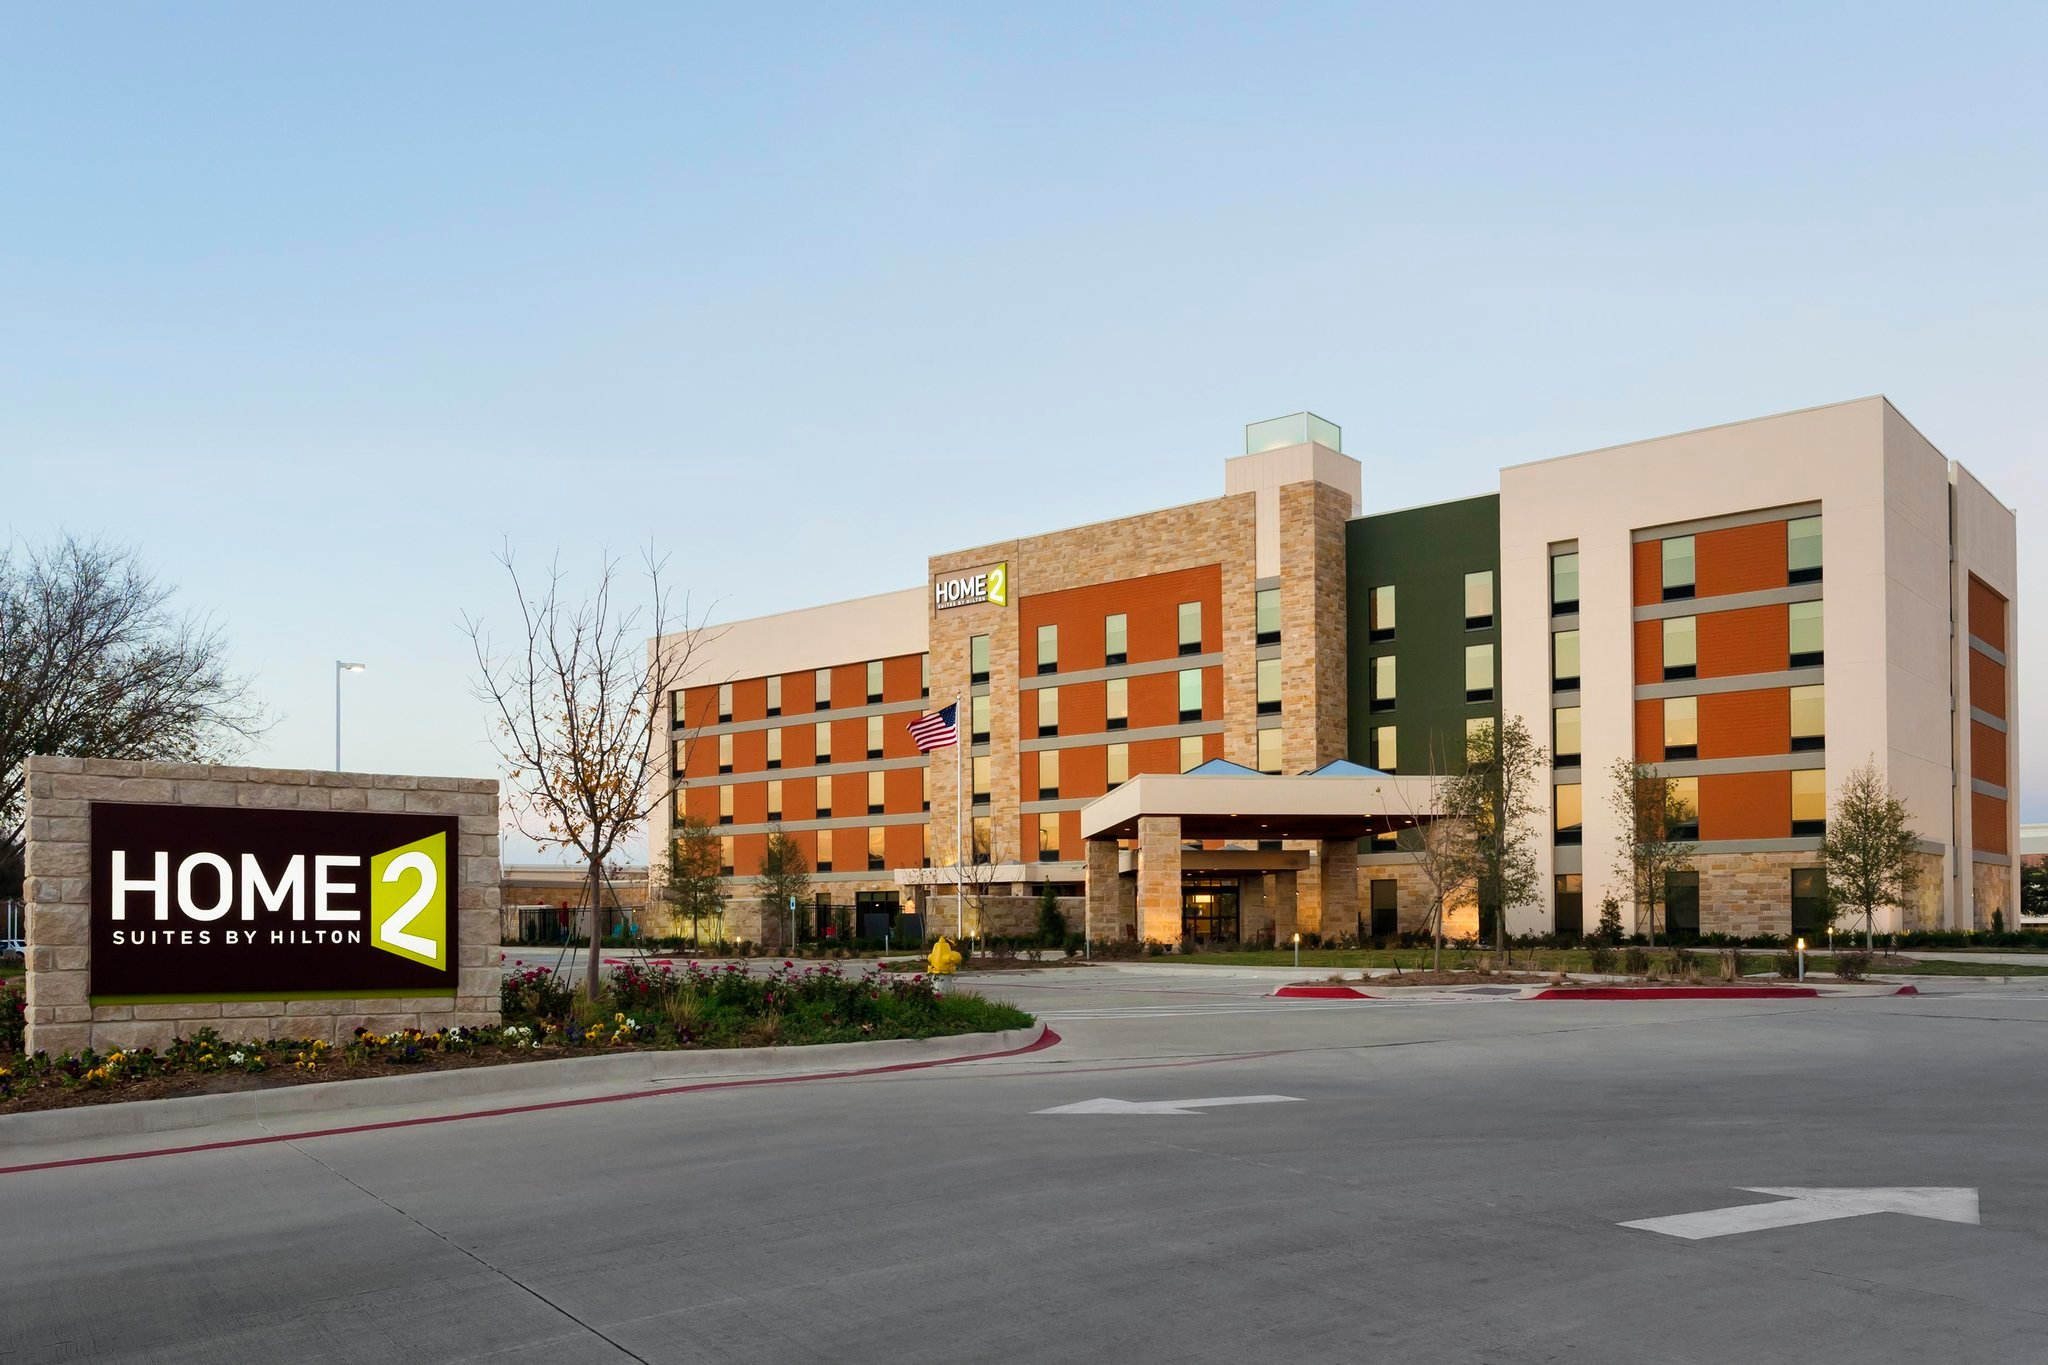 Home2 Suites by Hilton Dallas-Frisco